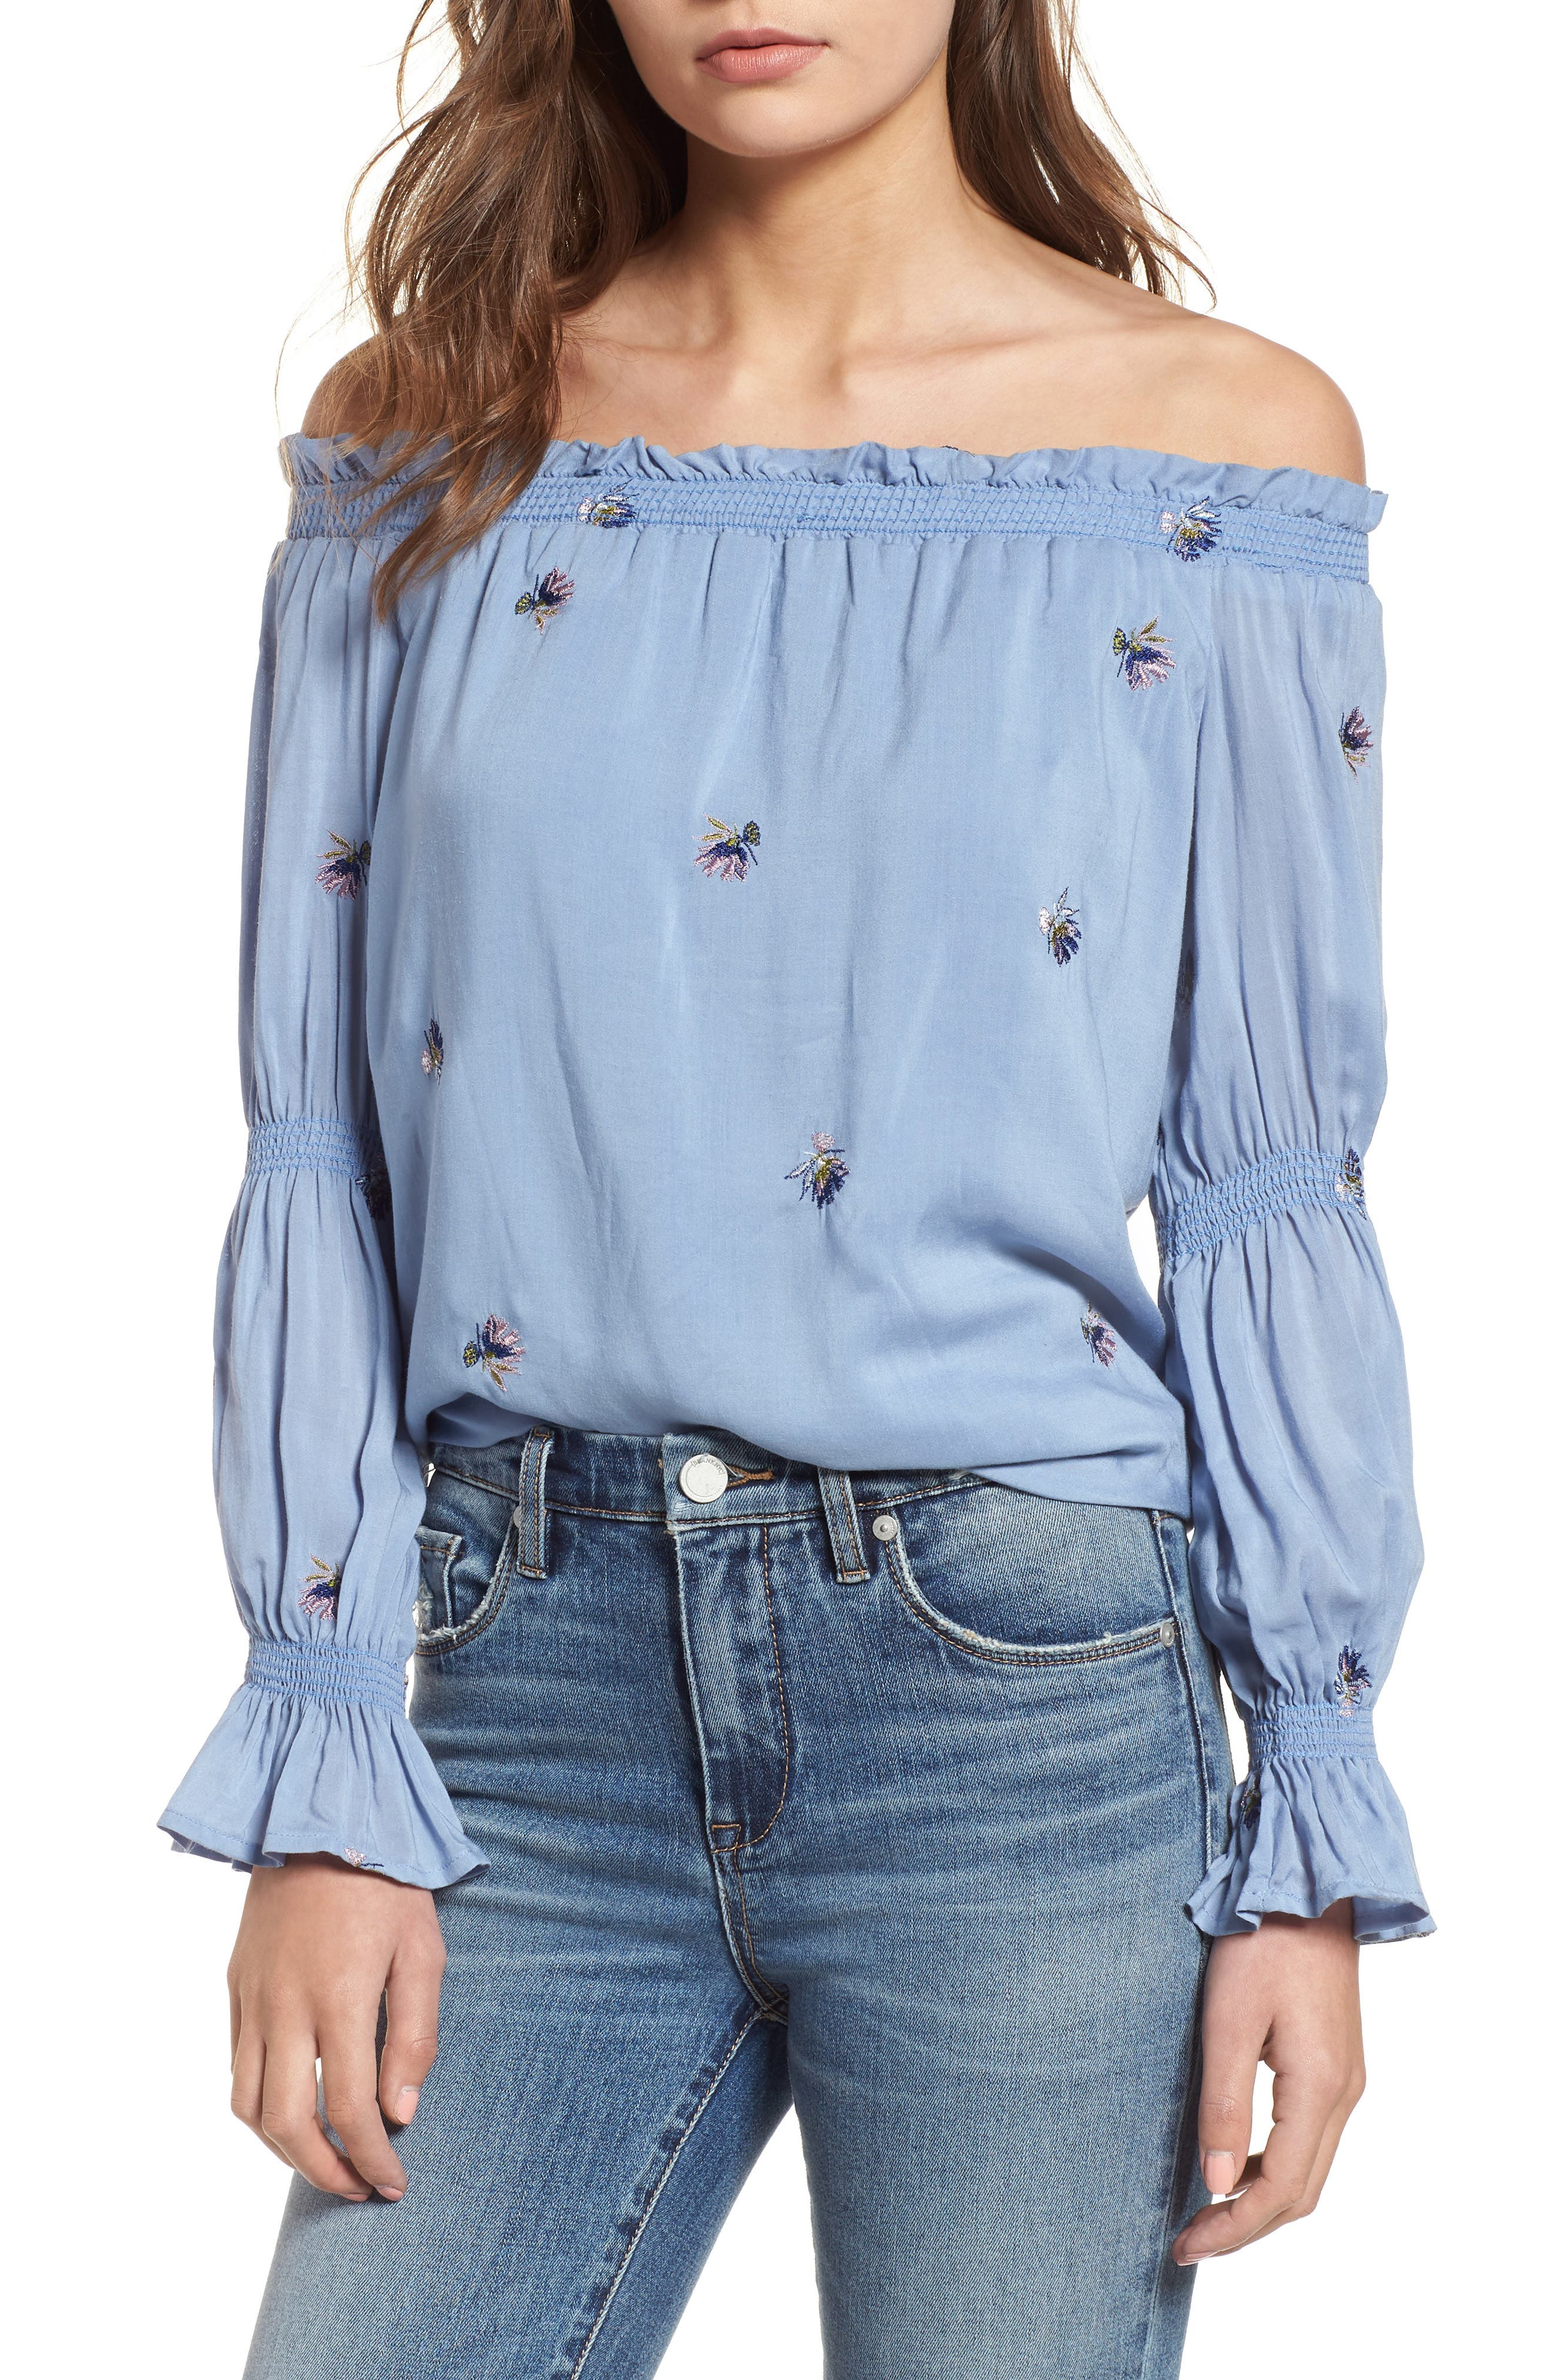 Rimini Off the Shoulder Top,                             Main thumbnail 1, color,                             Chambray Blue Embroidery